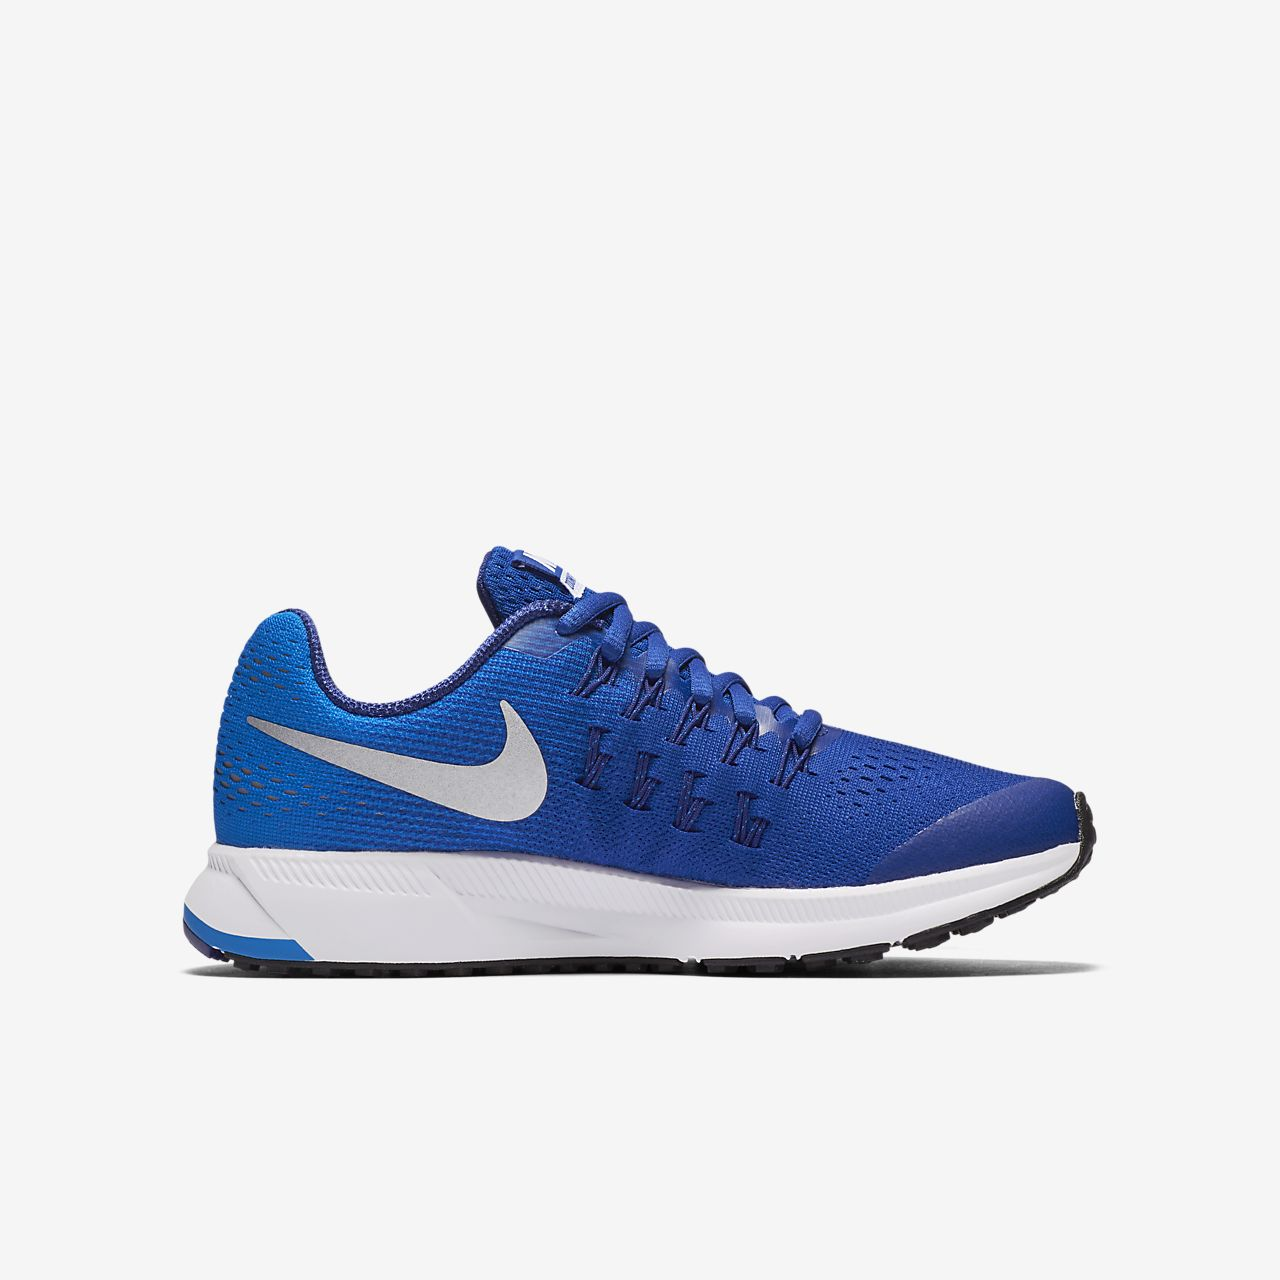 ae1a519d6b06 ... royal blue green white 831356 410 mens trail running shoes  nike air  zoom pegasus 33 older kids running shoe